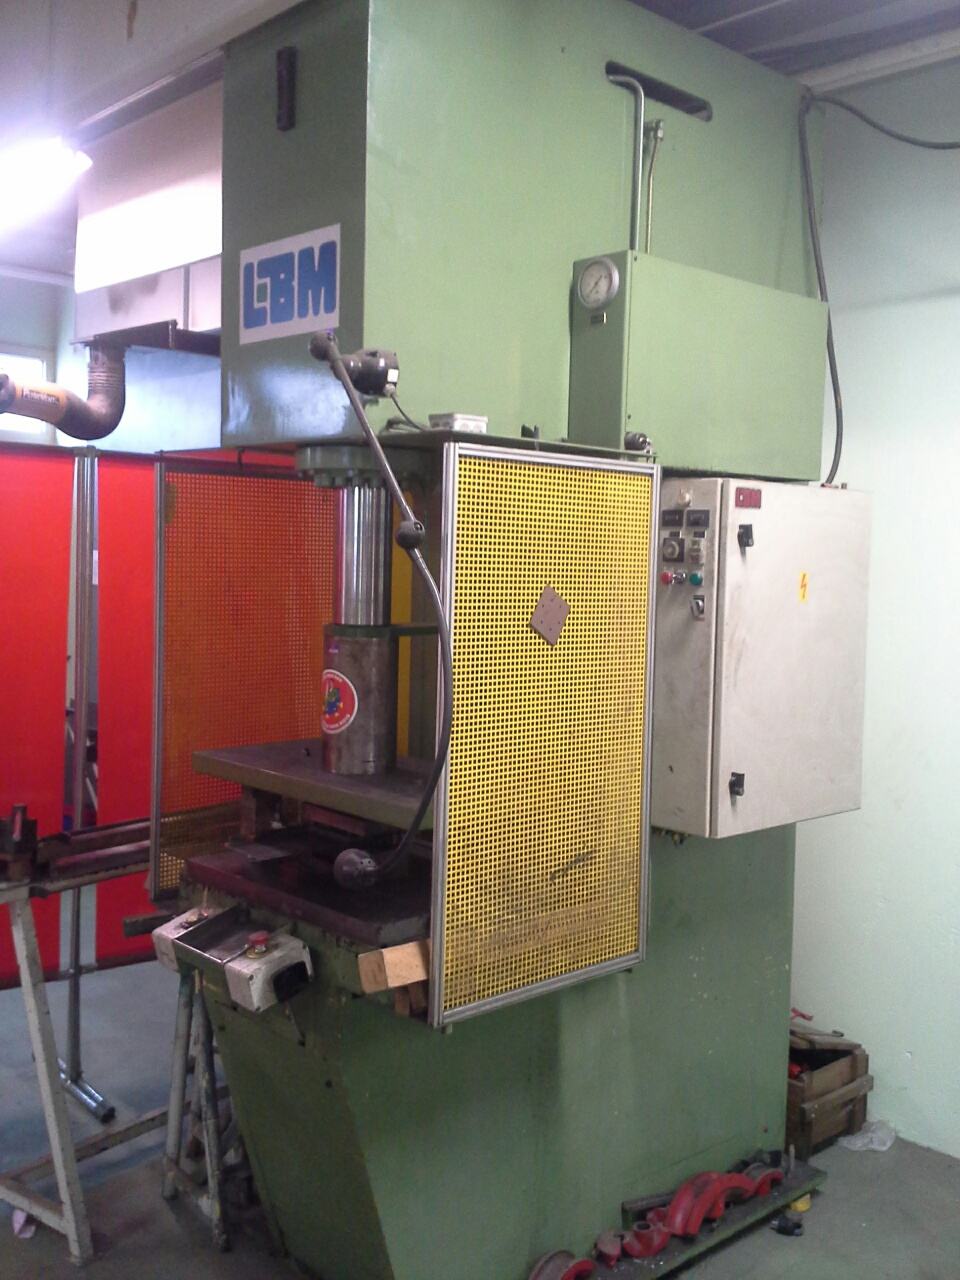 Hydraulic press LBM BG 403 / Press force : 40 T / Open height : 750 mm